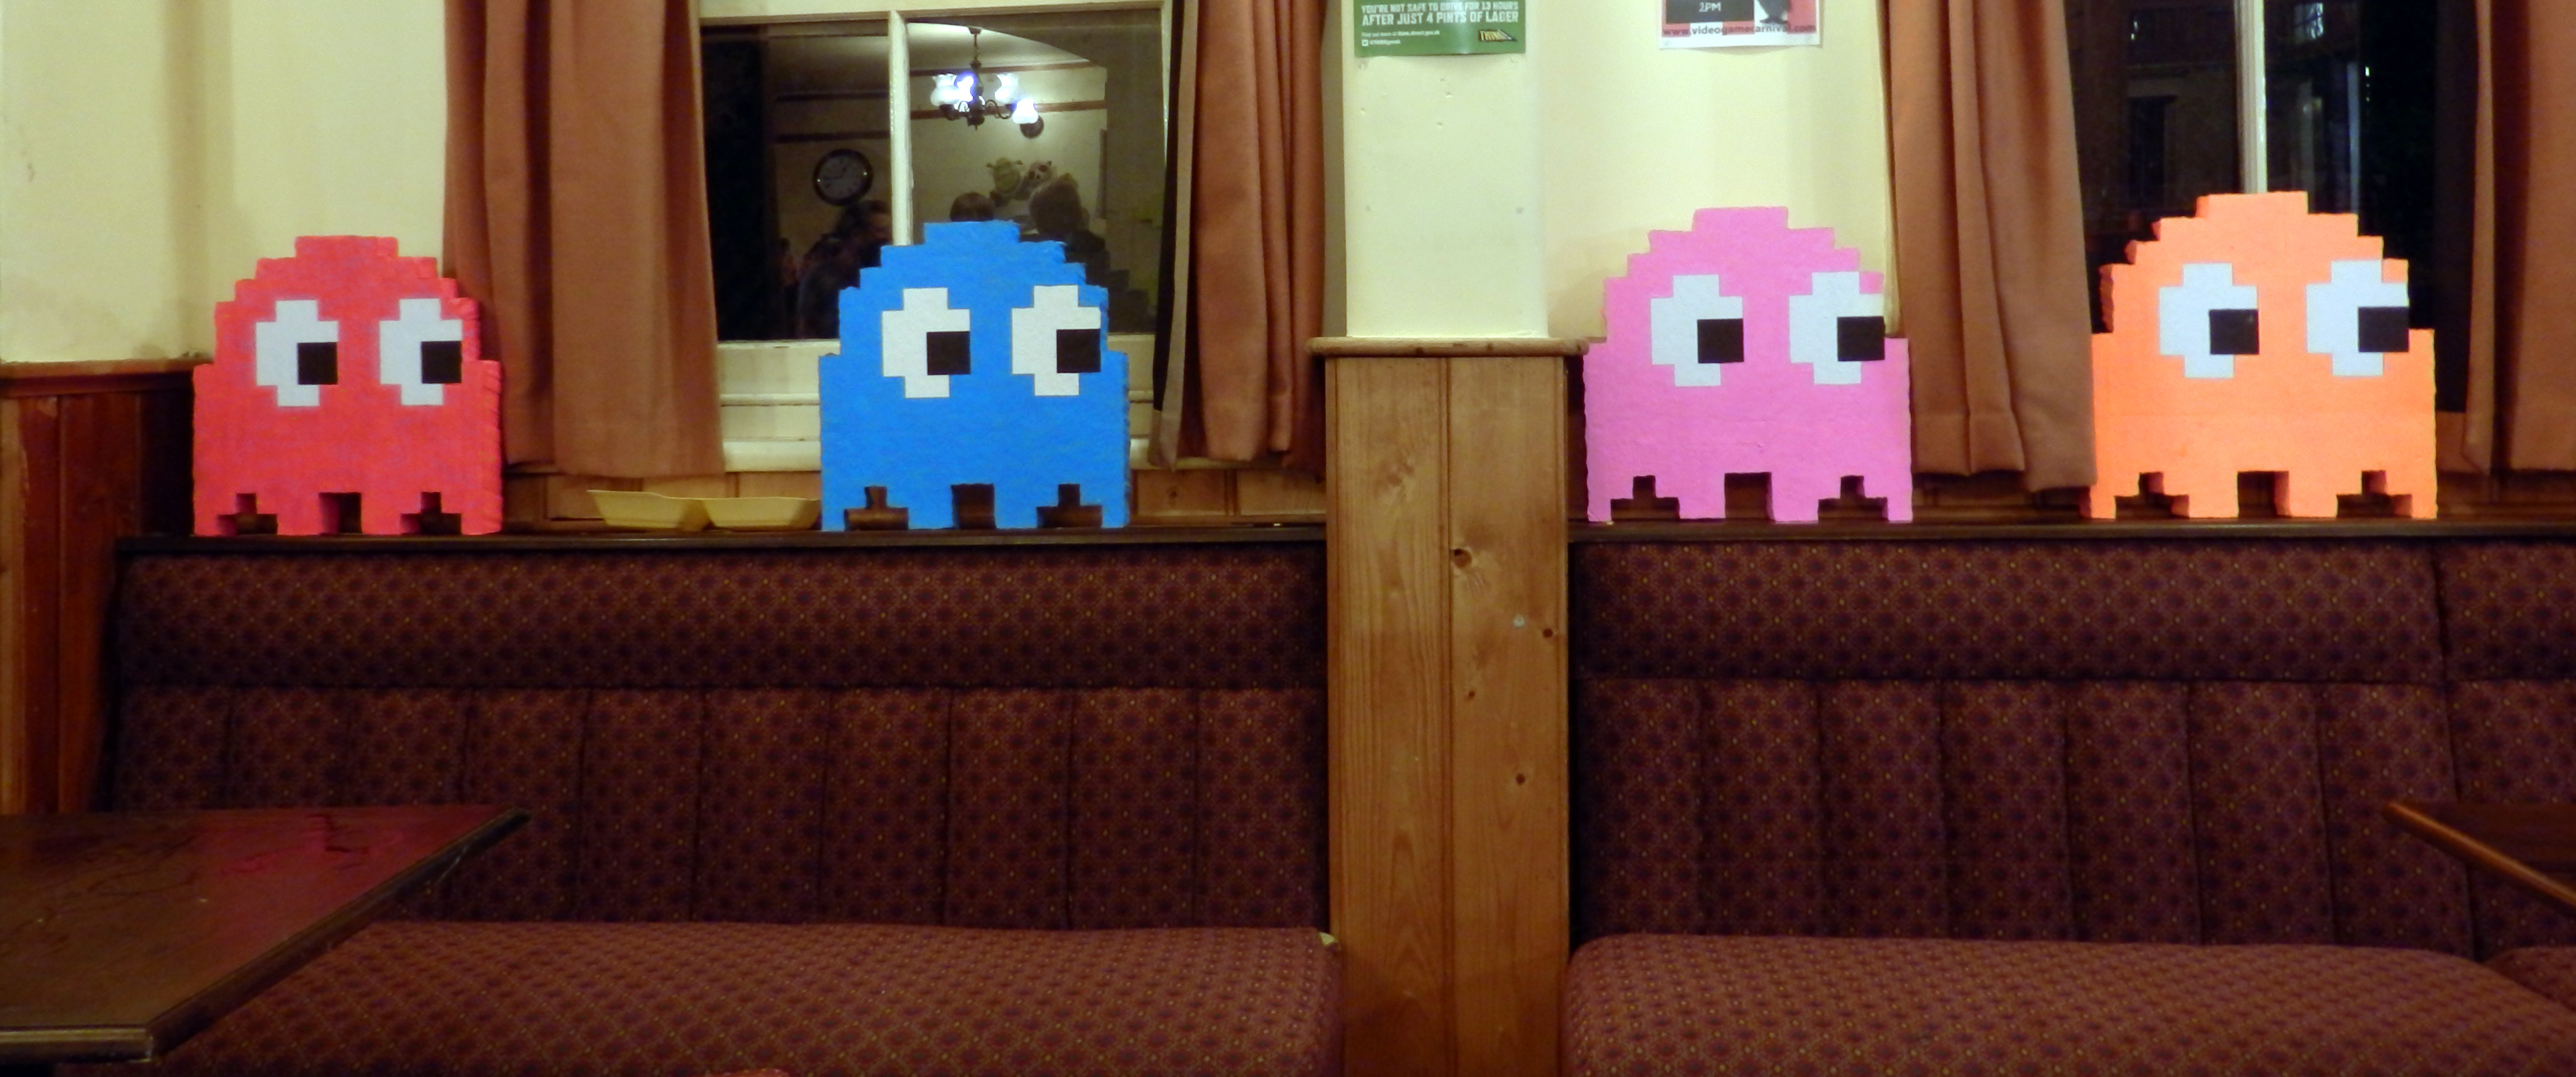 Pac Man Cast at the Pub by ggeudraco